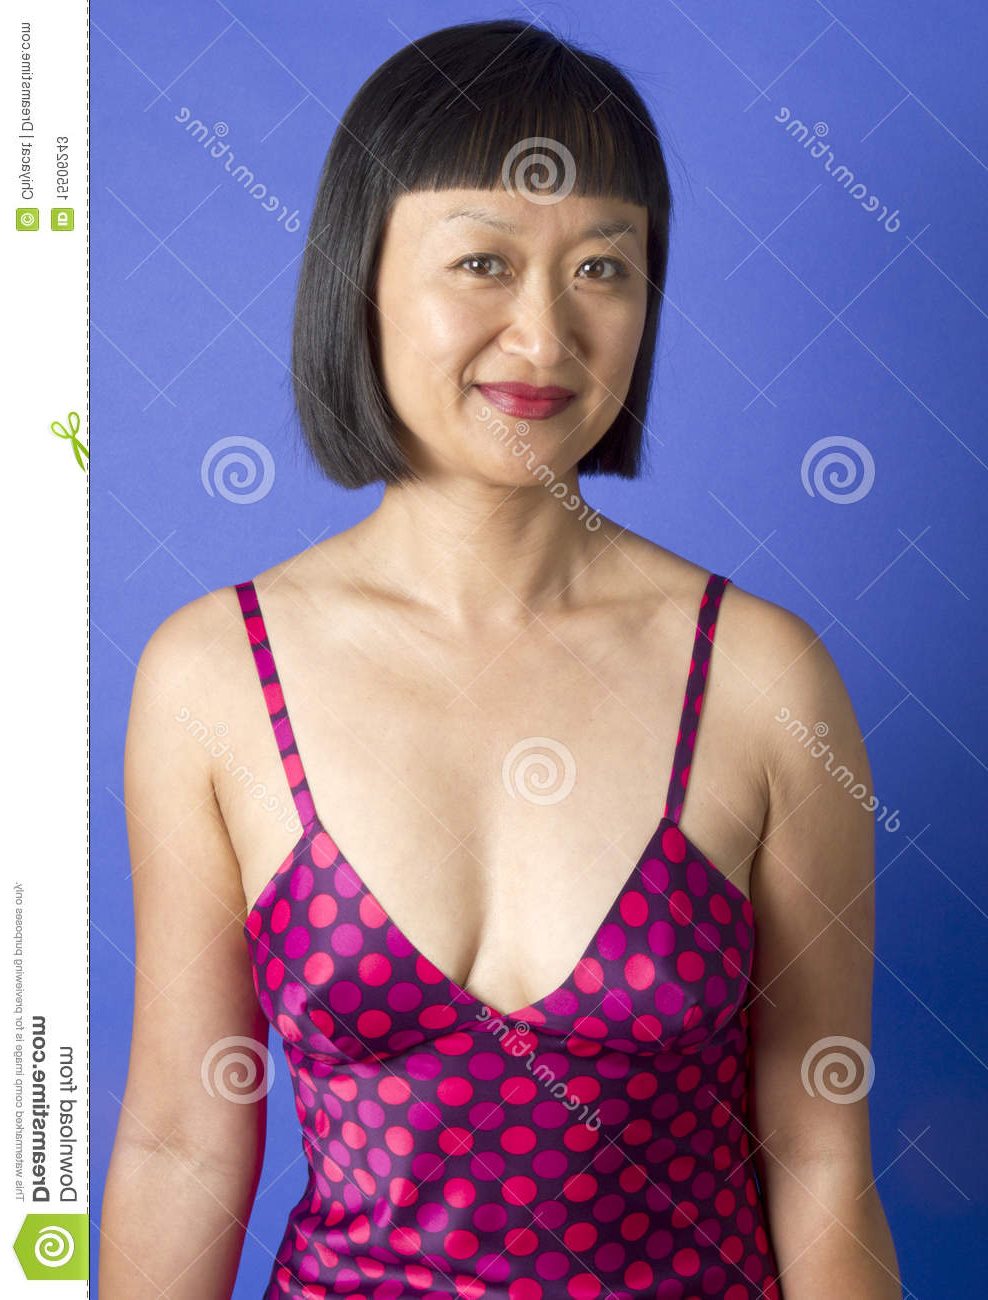 Asian Woman With Short Hair Smiling Stock Image – Image Of With Regard To Short Hairstyle For Asian Girl (Gallery 20 of 25)